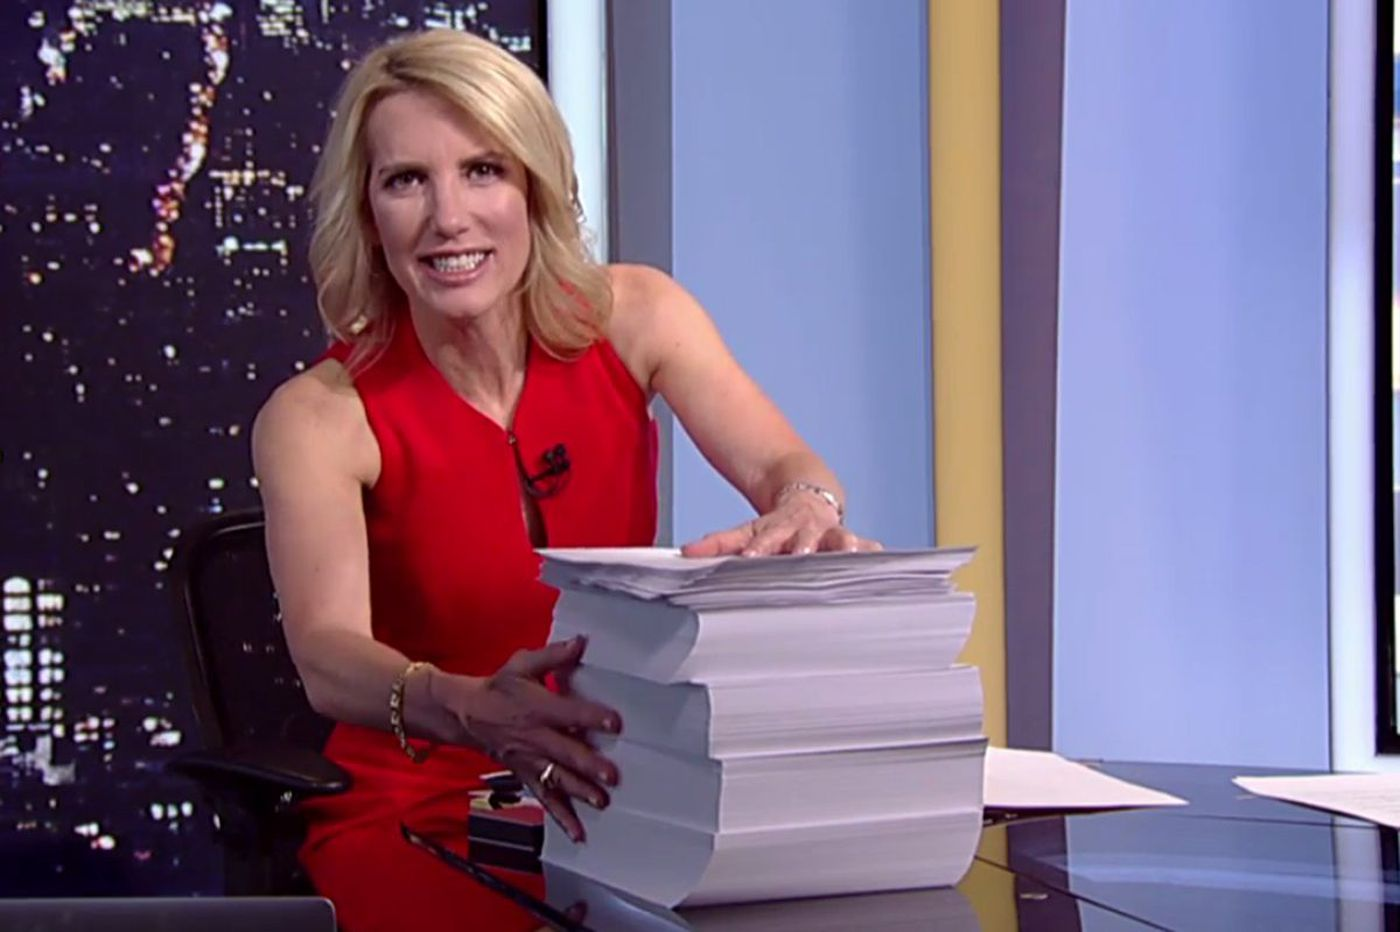 It's official: Laura Ingraham will return to her Fox News show